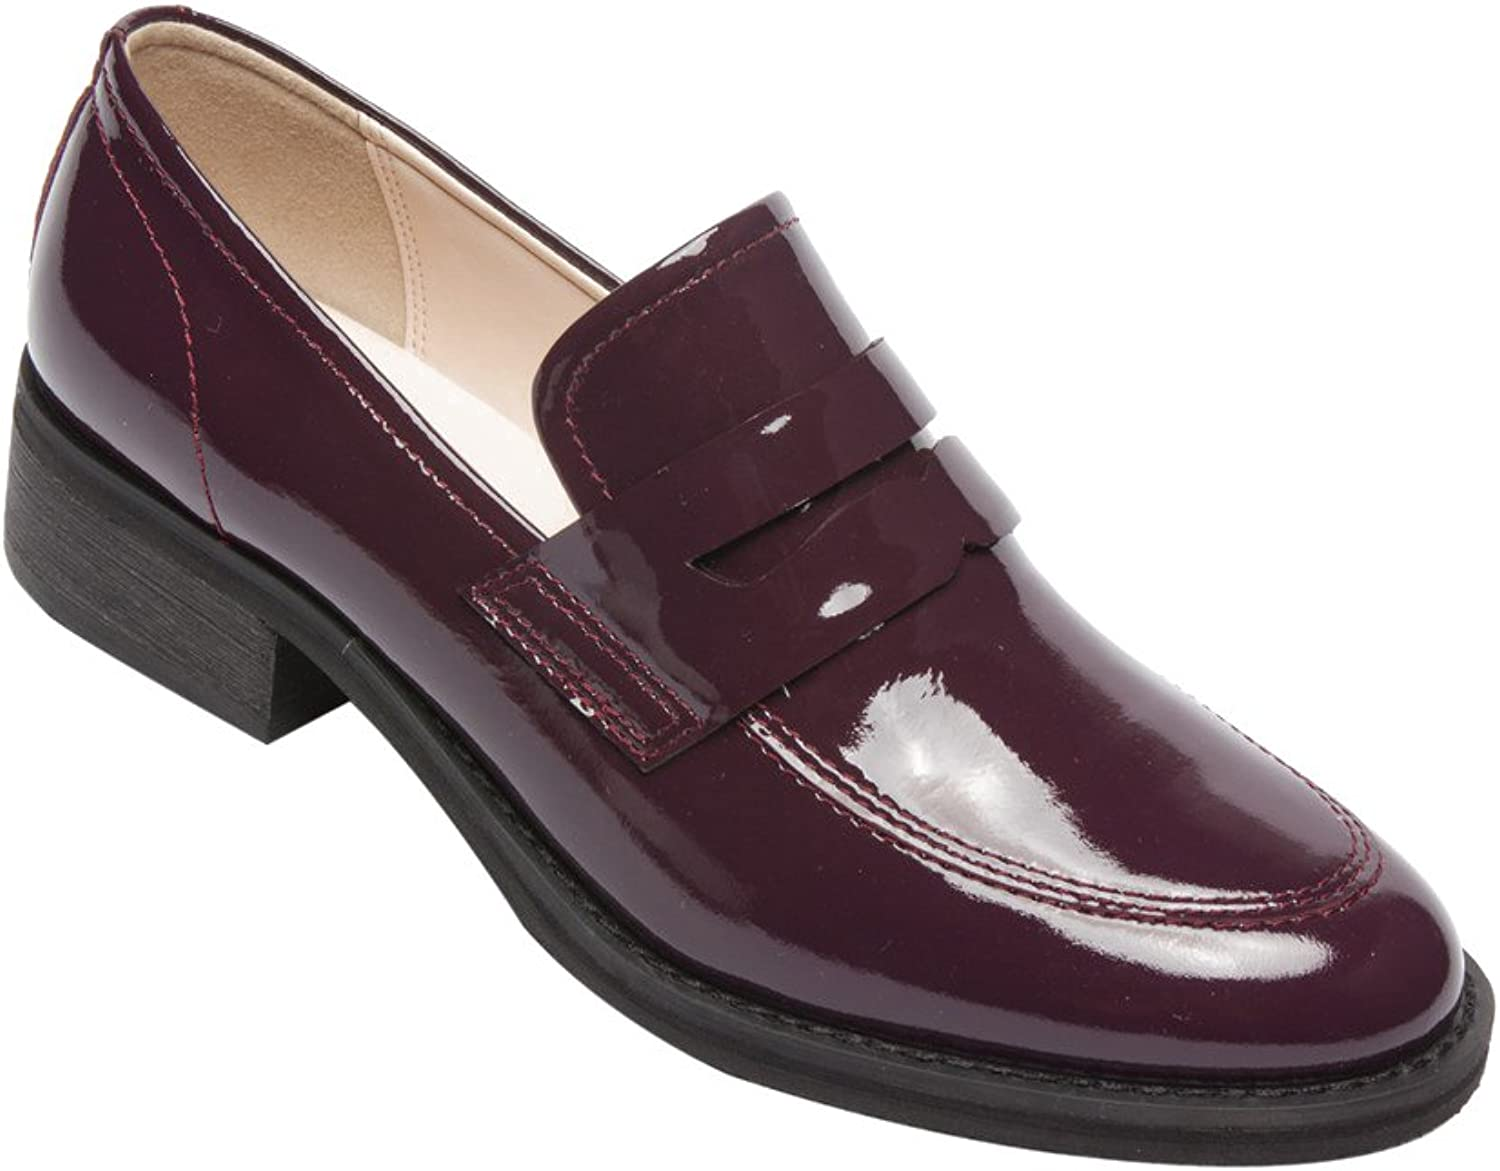 PIC PAY Eric - Women's Patent Penny Loafers - Stacked Leather Block Heel Casual Slip-On Flat Plum Patent 5.5M